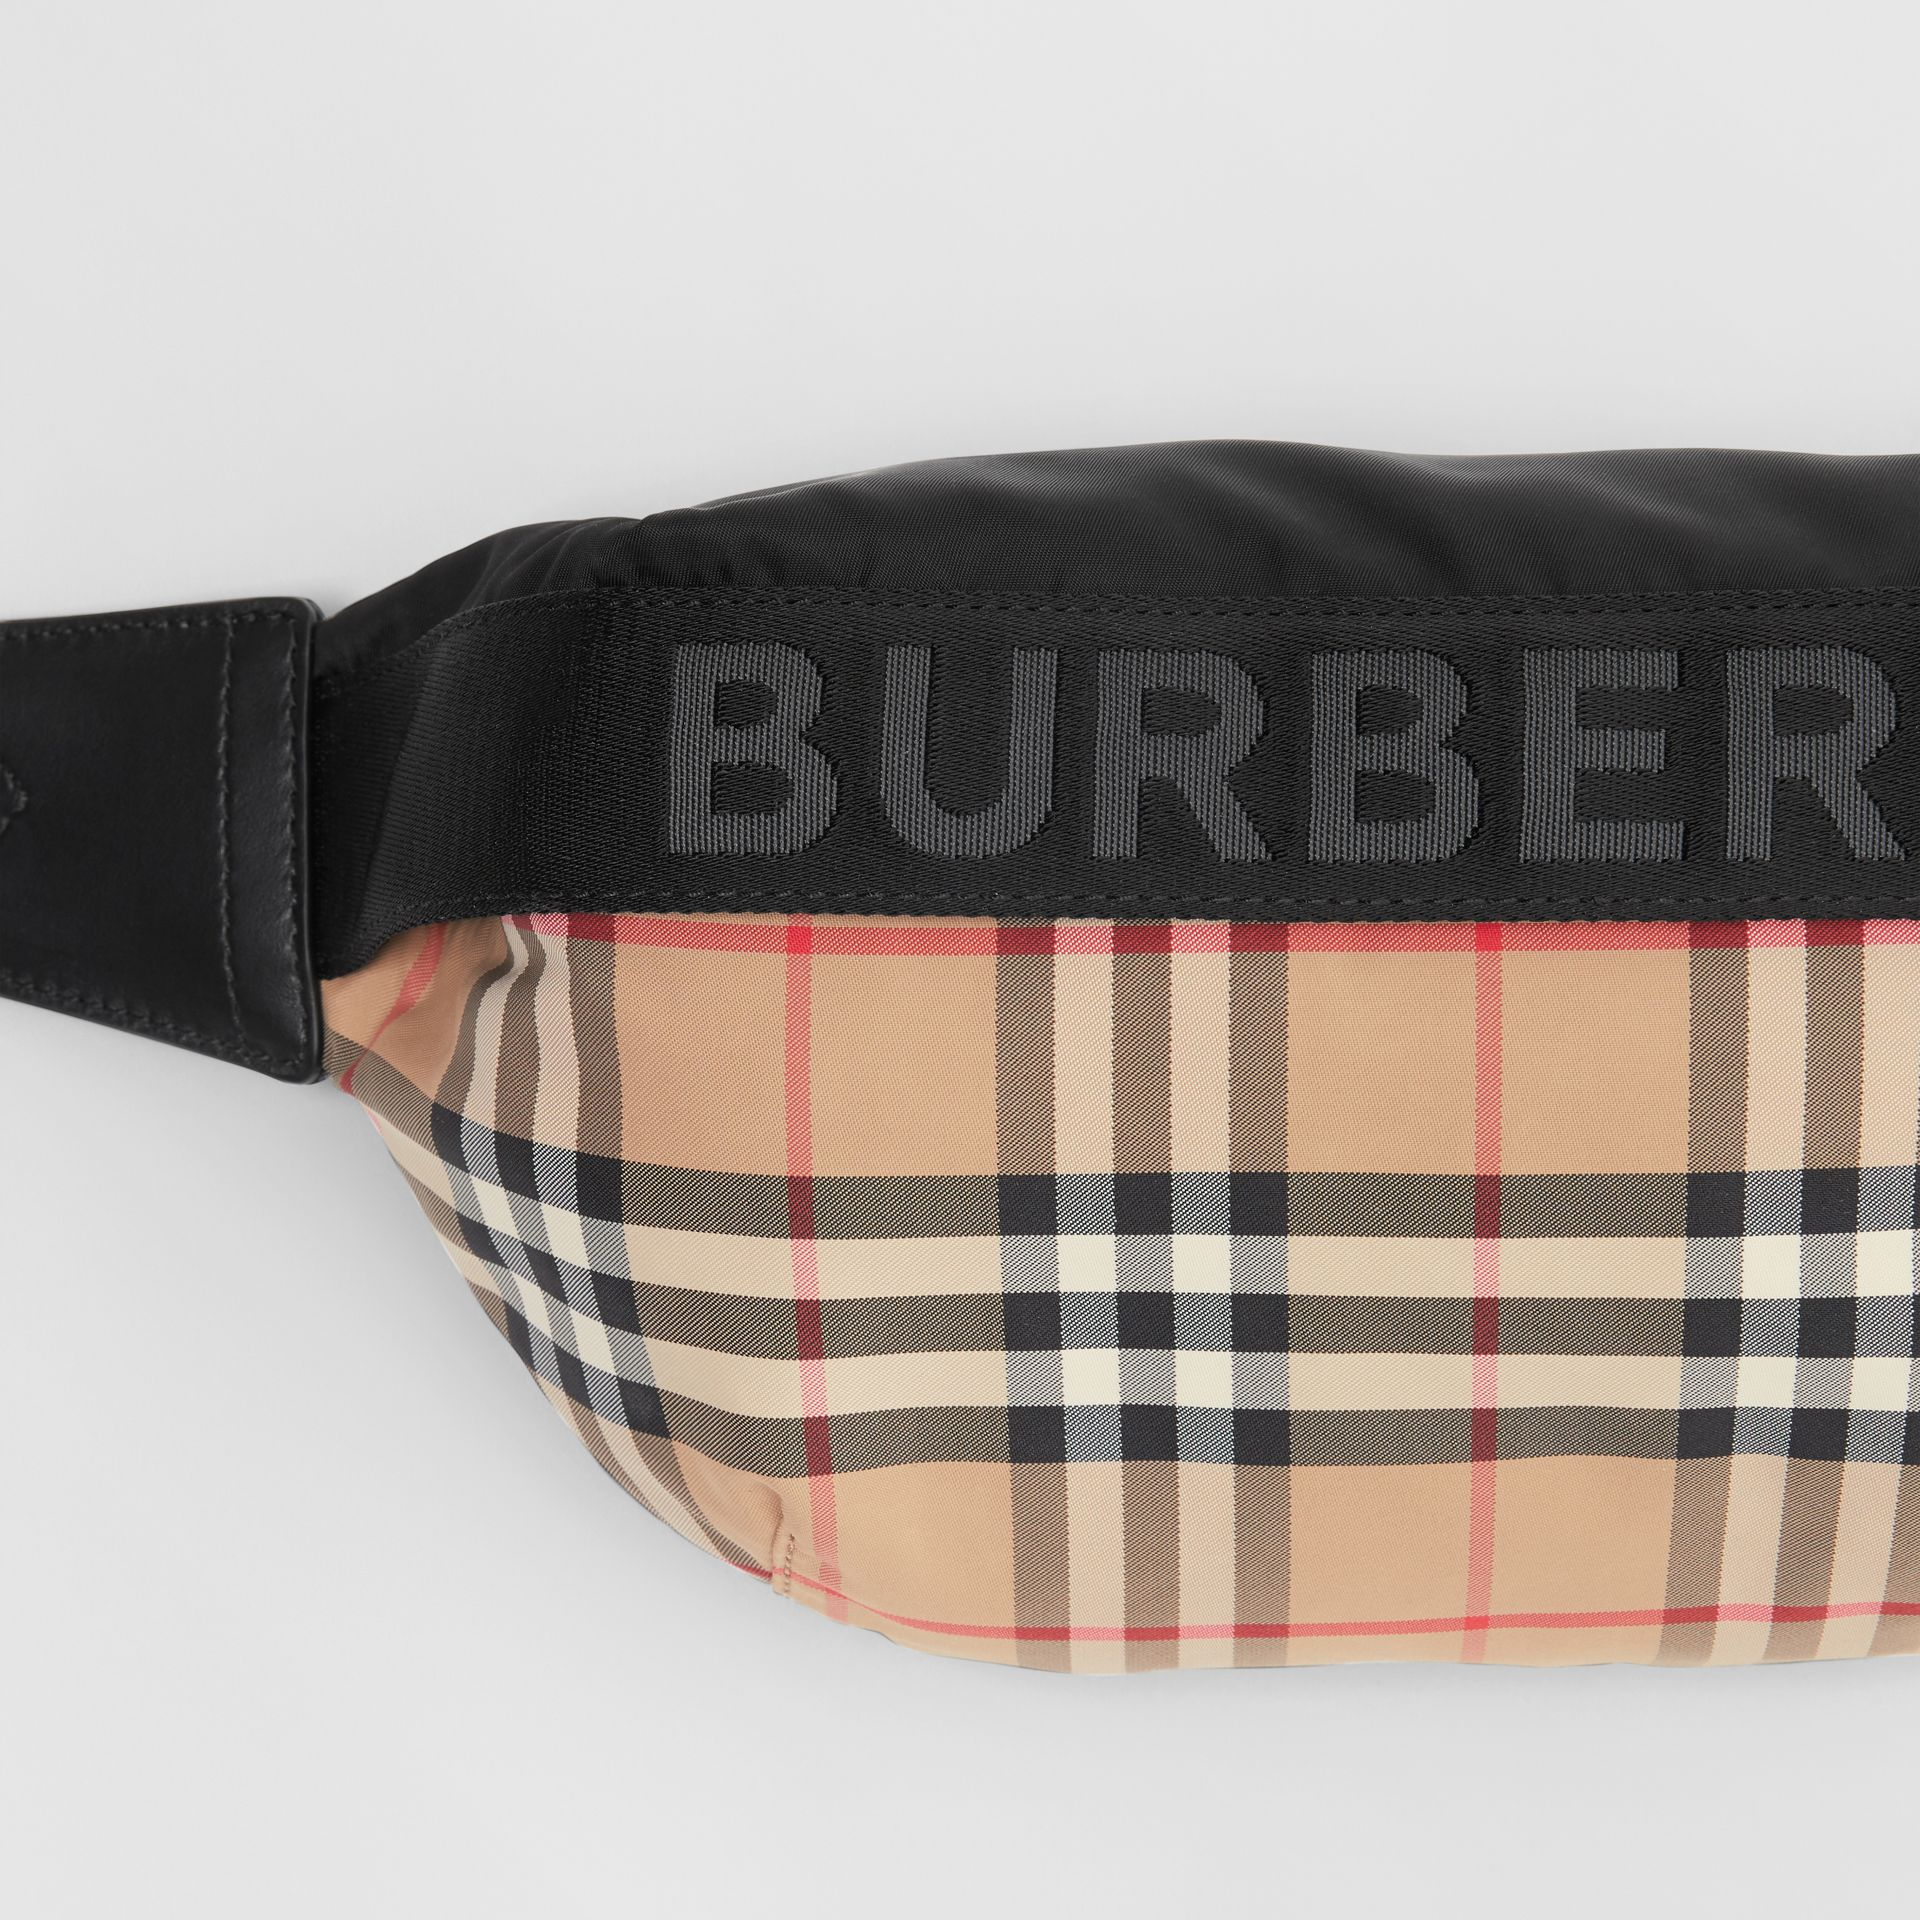 Medium Vintage Check Bum Bag in Archive Beige | Burberry - gallery image 7